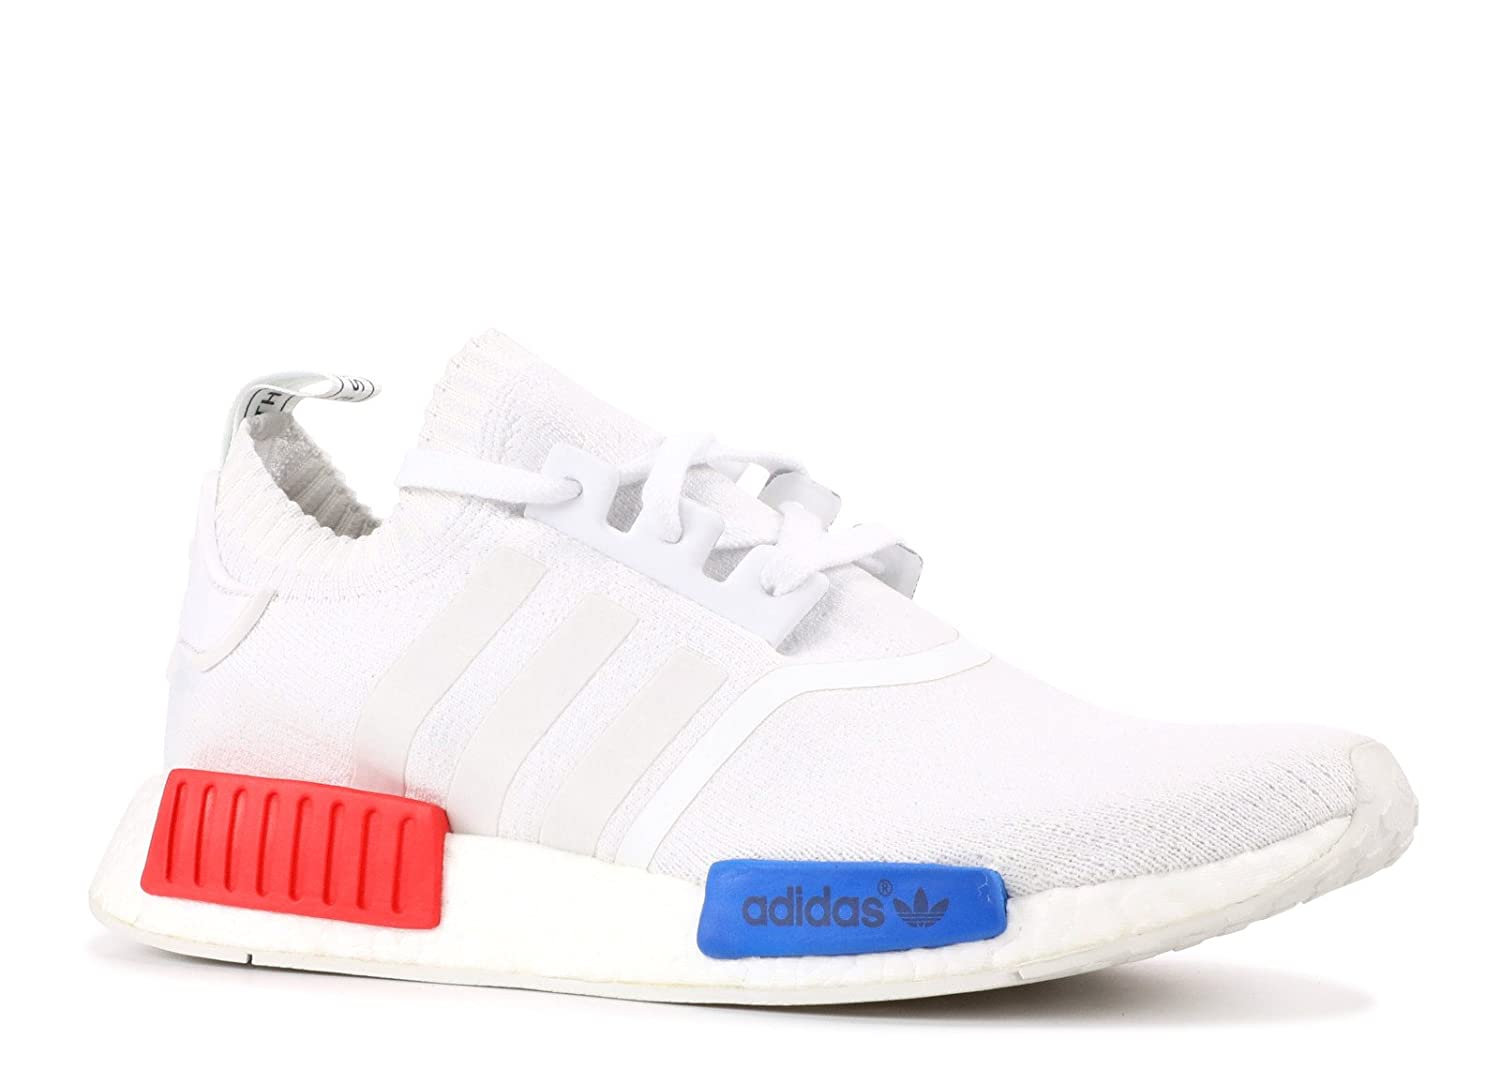 the latest b3c4b db906 Amazon.com | adidas NMD Runner Pk - S79482 - Size 11 White ...